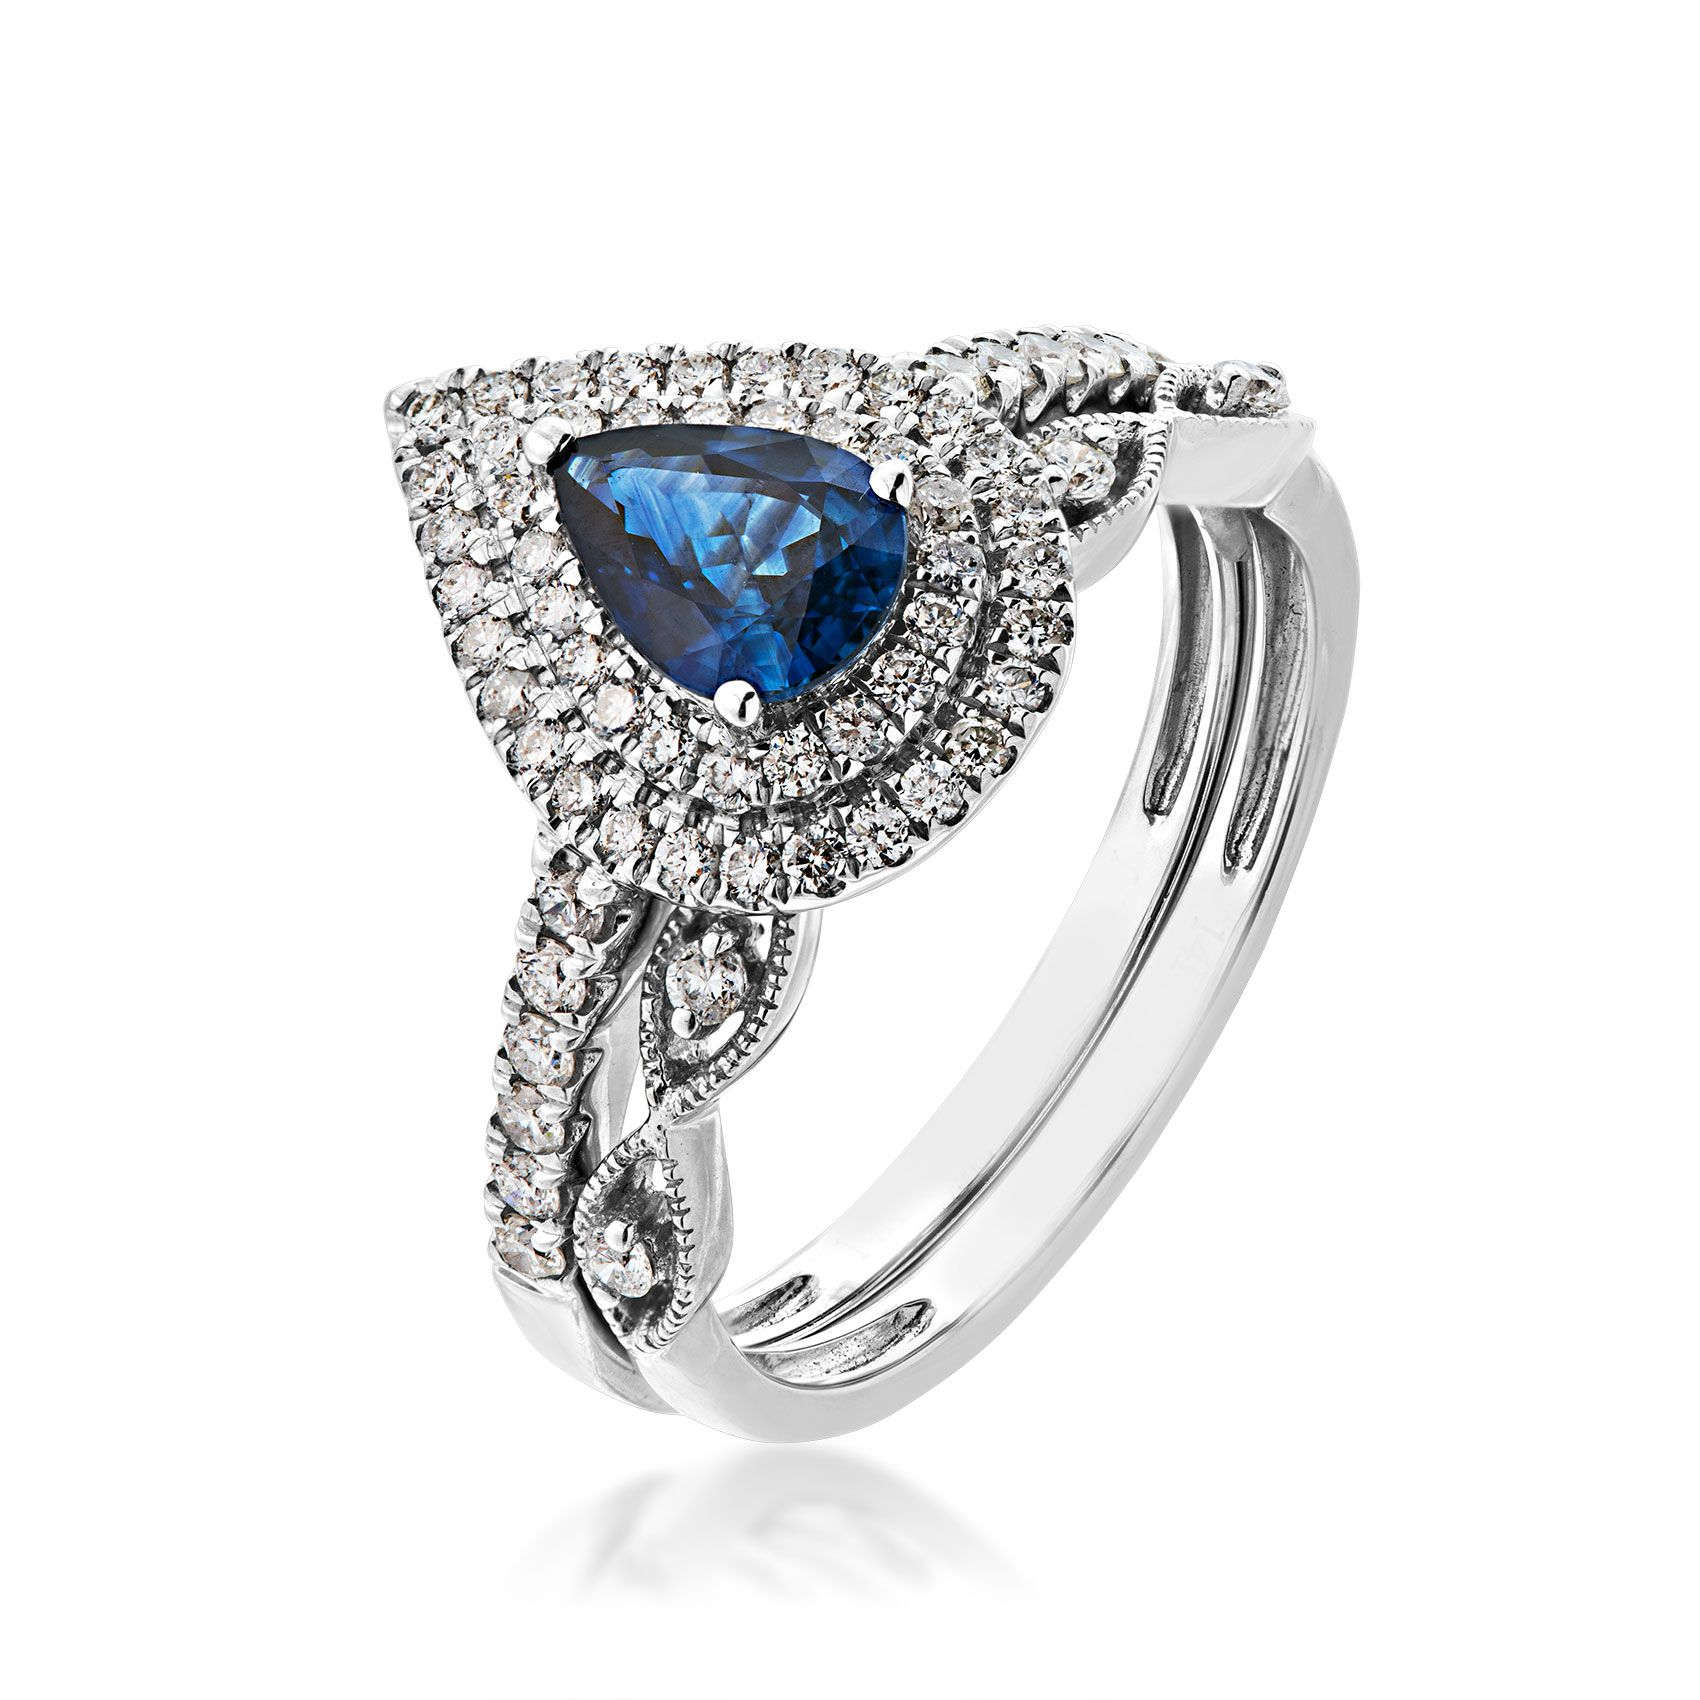 Love In Color Genuine Pear Shape Sapphire 1 2 Ct Tw Diamond Wedding Set In 14k White Gold Tw1305r Diamond Wedding Sets Wedding Sets White Gold